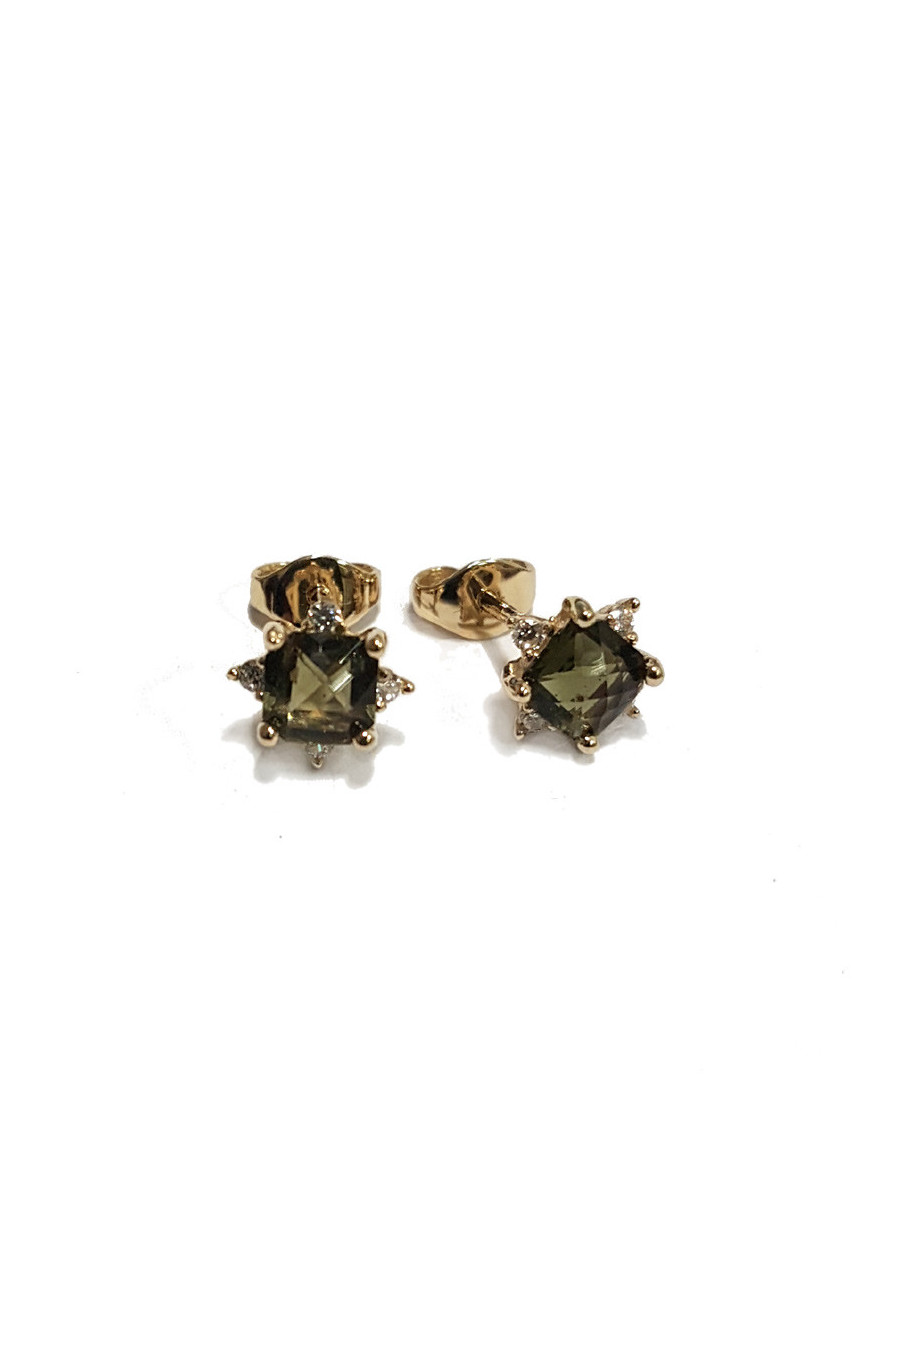 gold stud lock earrings, moldavite